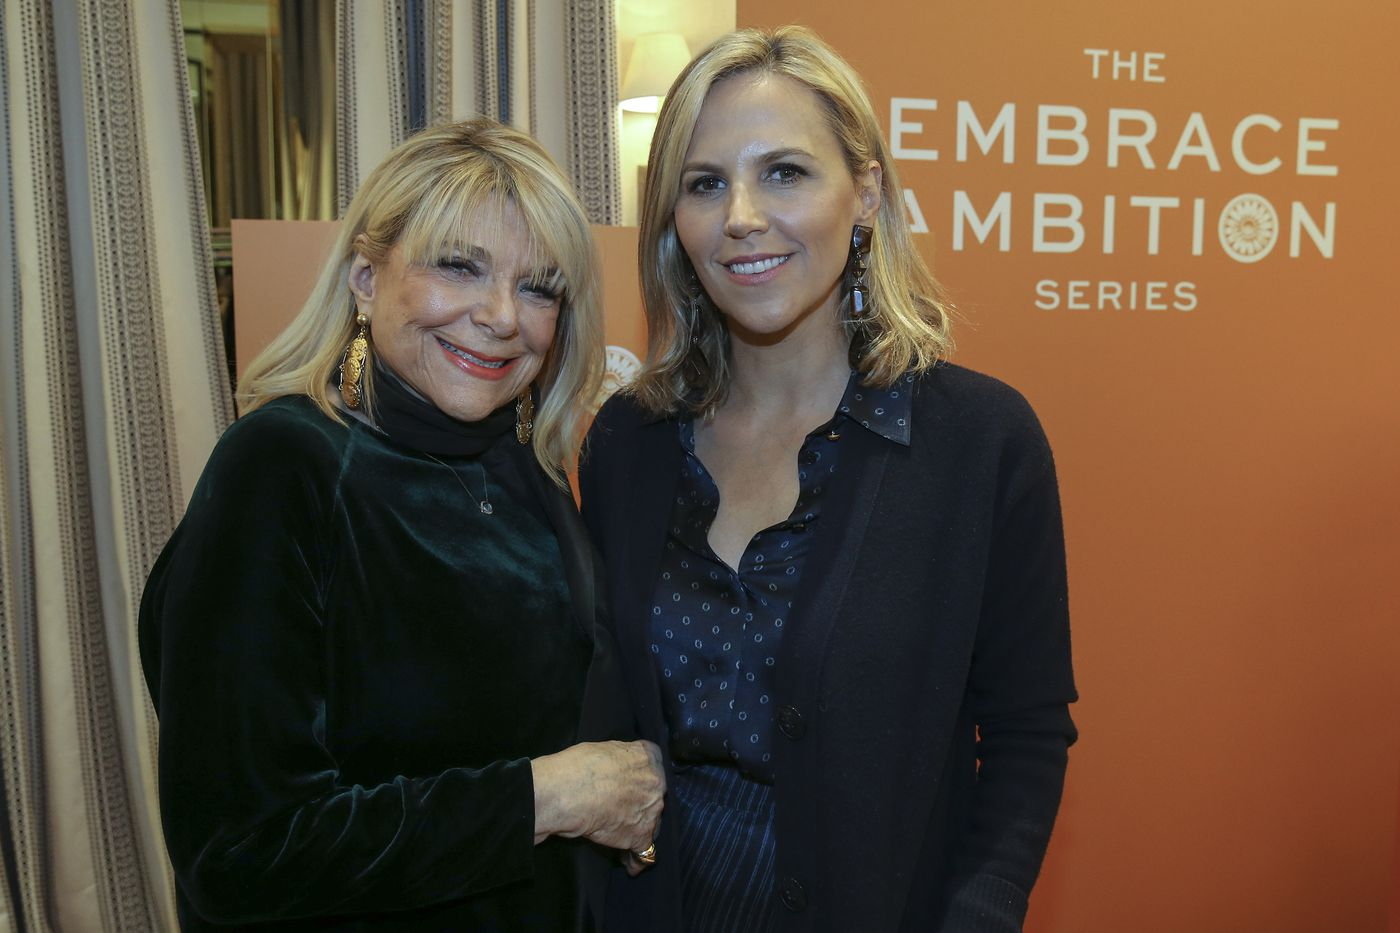 a3f115344b2 7 cool things I learned about Tory Burch (and her mom